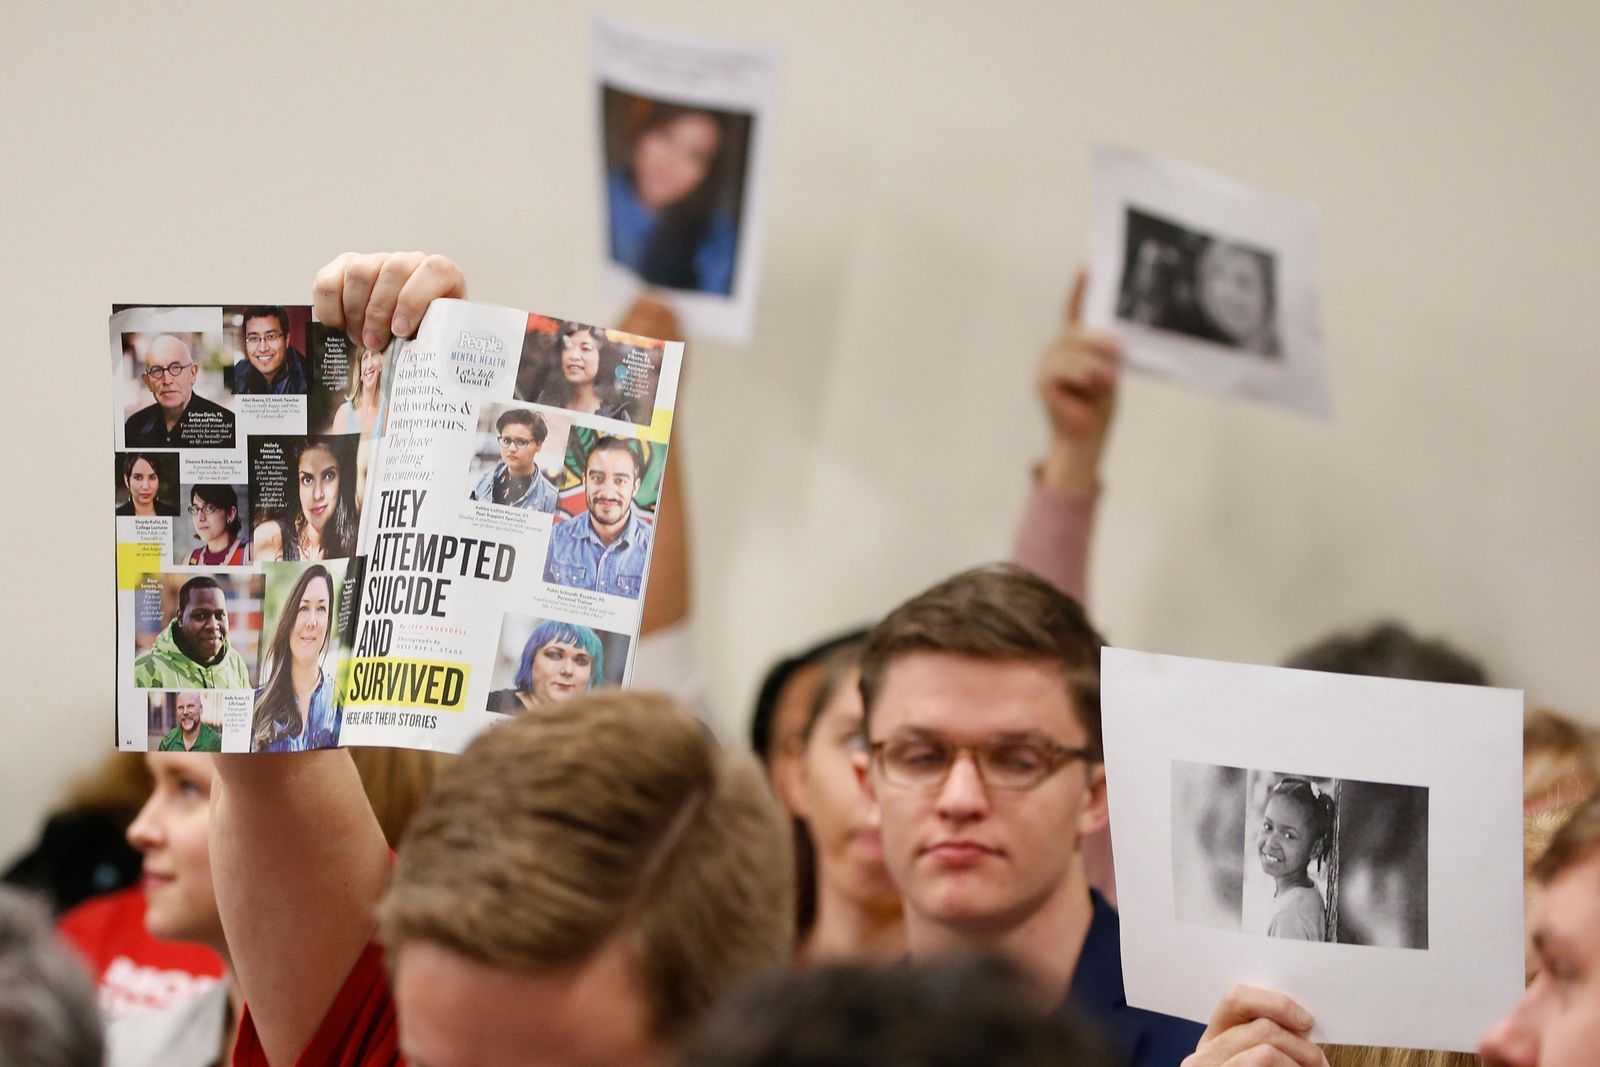 FILE - In a Monday, Jan. 13, 2020 file photo, supporters of gun laws hold us photos of gun violence victims during a meeting of the Senate Judiciary committee at the Capitol in Richmond, Va. Gun-rights groups asked a judge Thursday, Jan. 16, 2020 to block Virginia Gov. Ralph Northam from banning guns on Capitol grounds during a massive pro-gun rally scheduled for Monday, Jan. 20, 2020. (AP Photo/Steve Helber, File)